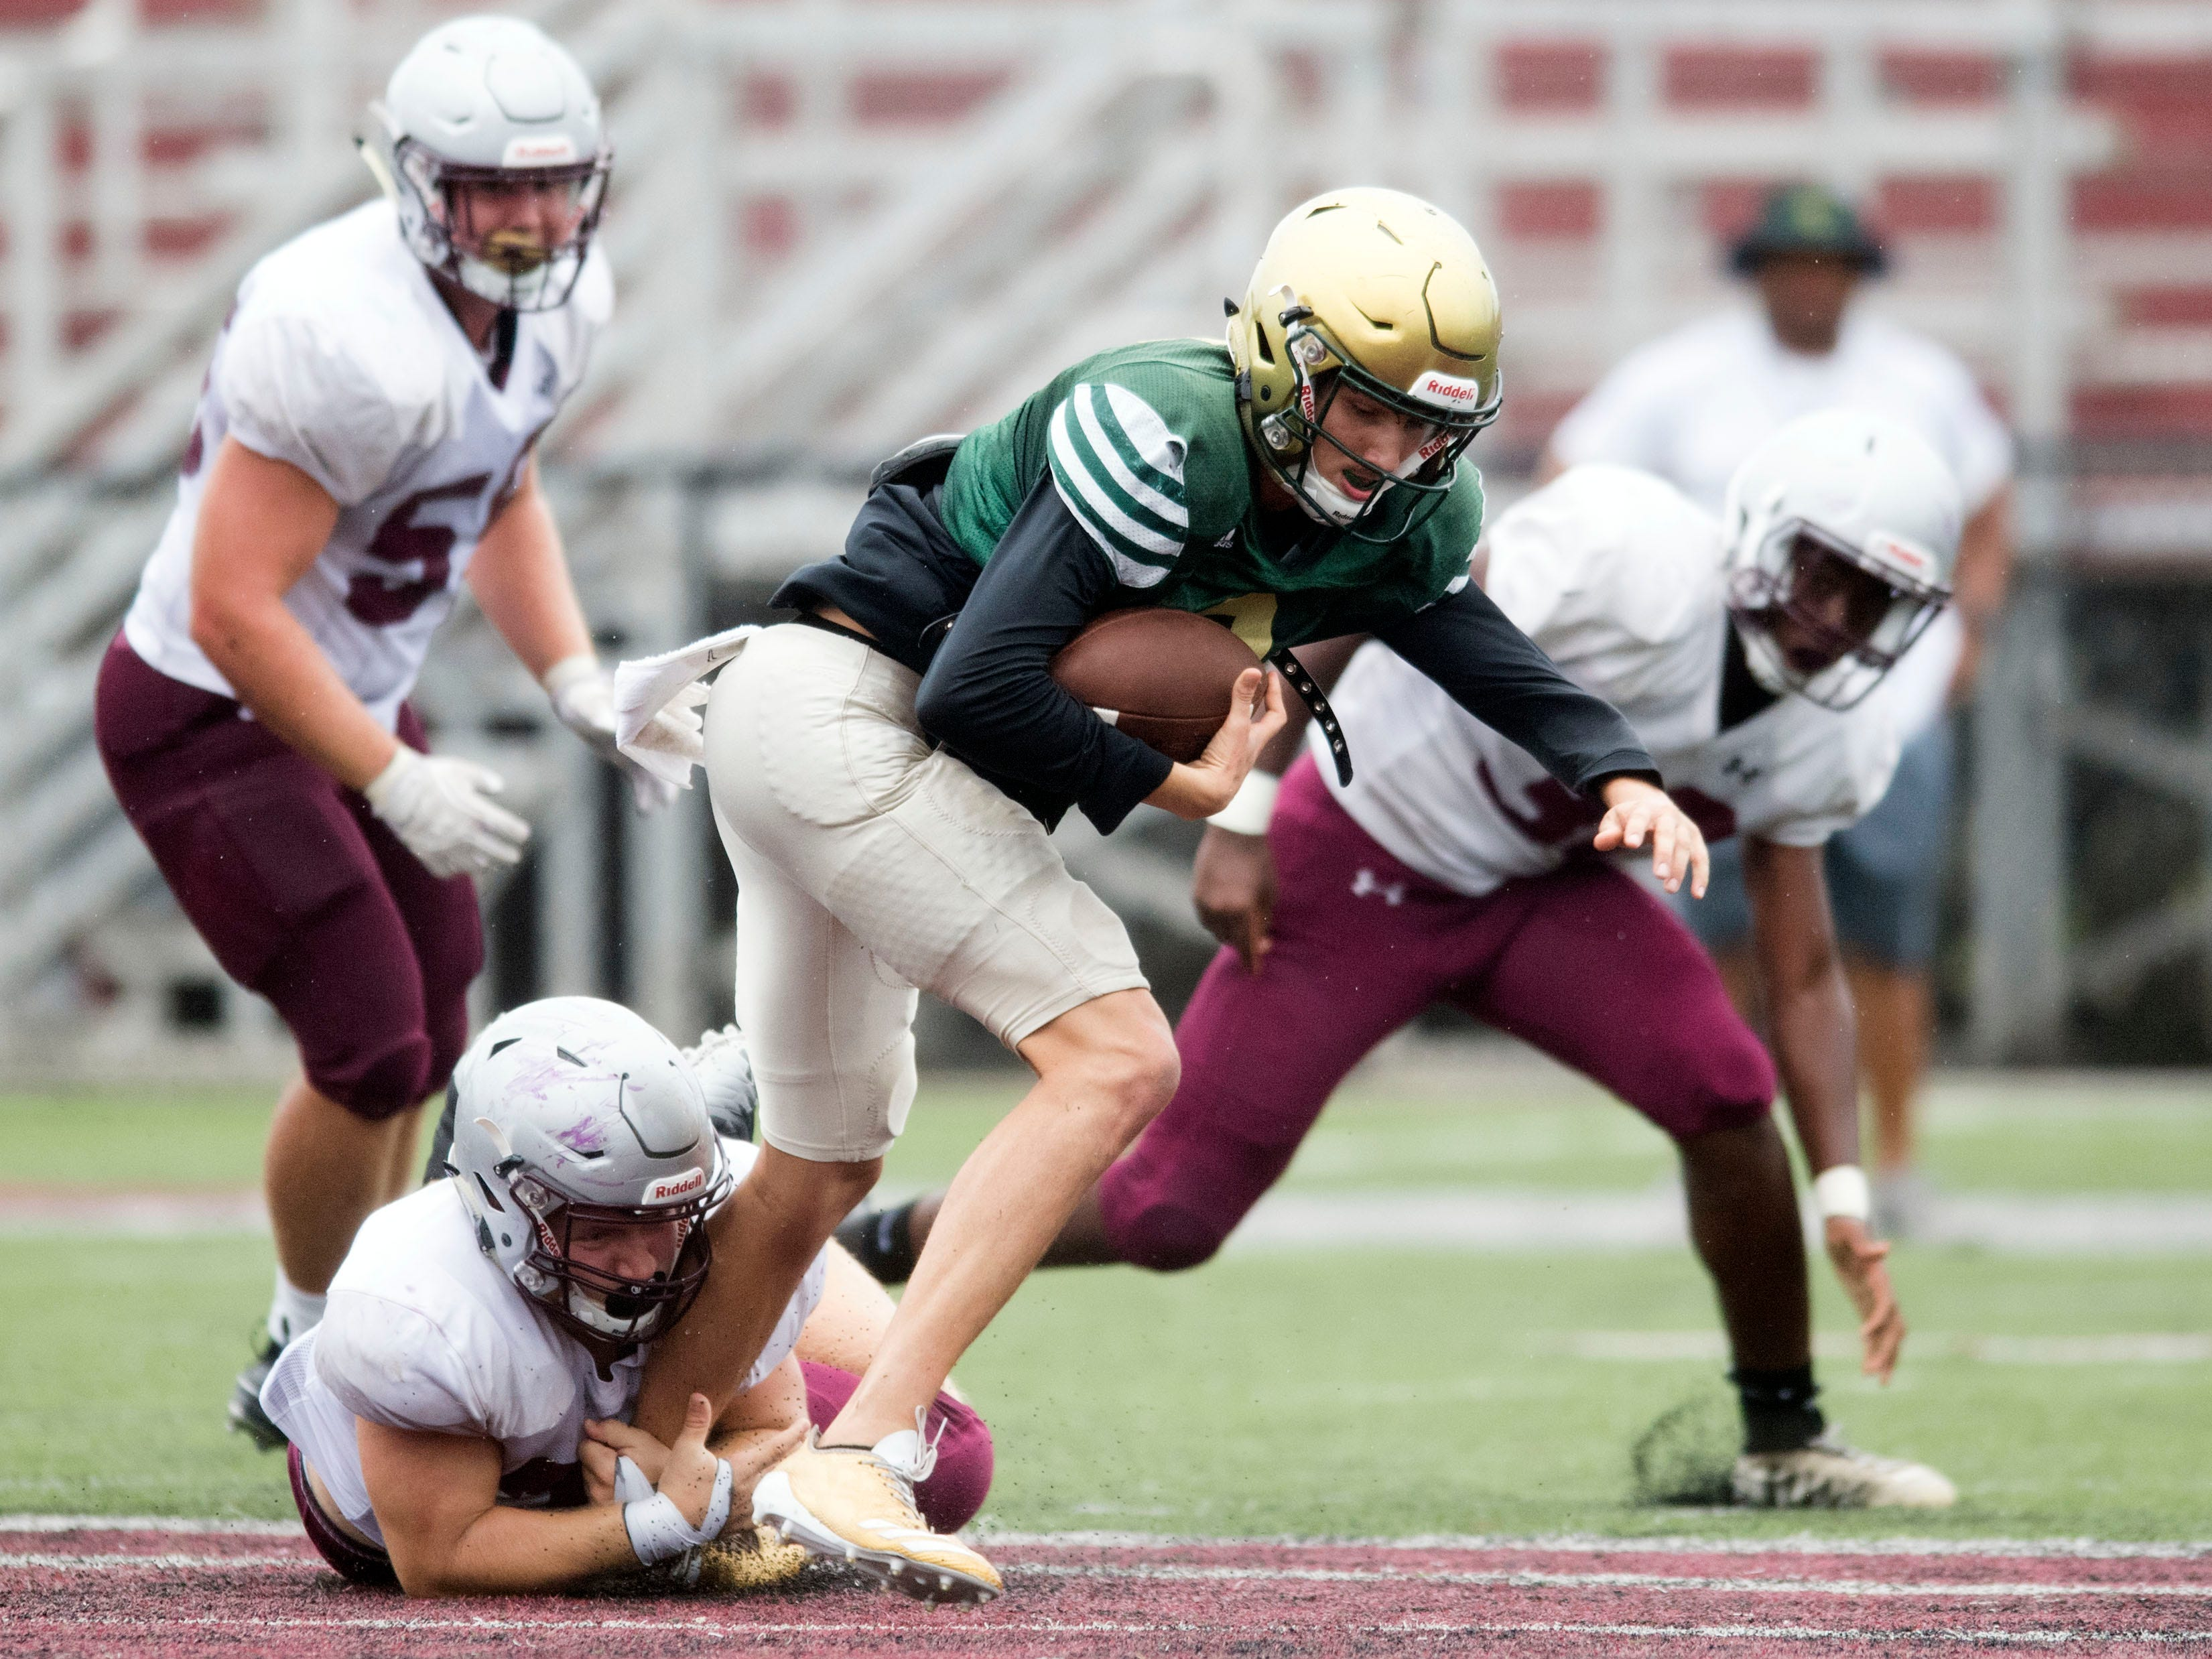 Knoxville Catholic's Jack Jancek (3) is grabbed by Alcoa's Malachi Jared (35) during a football scrimmage on Tuesday, July 31, 2018.